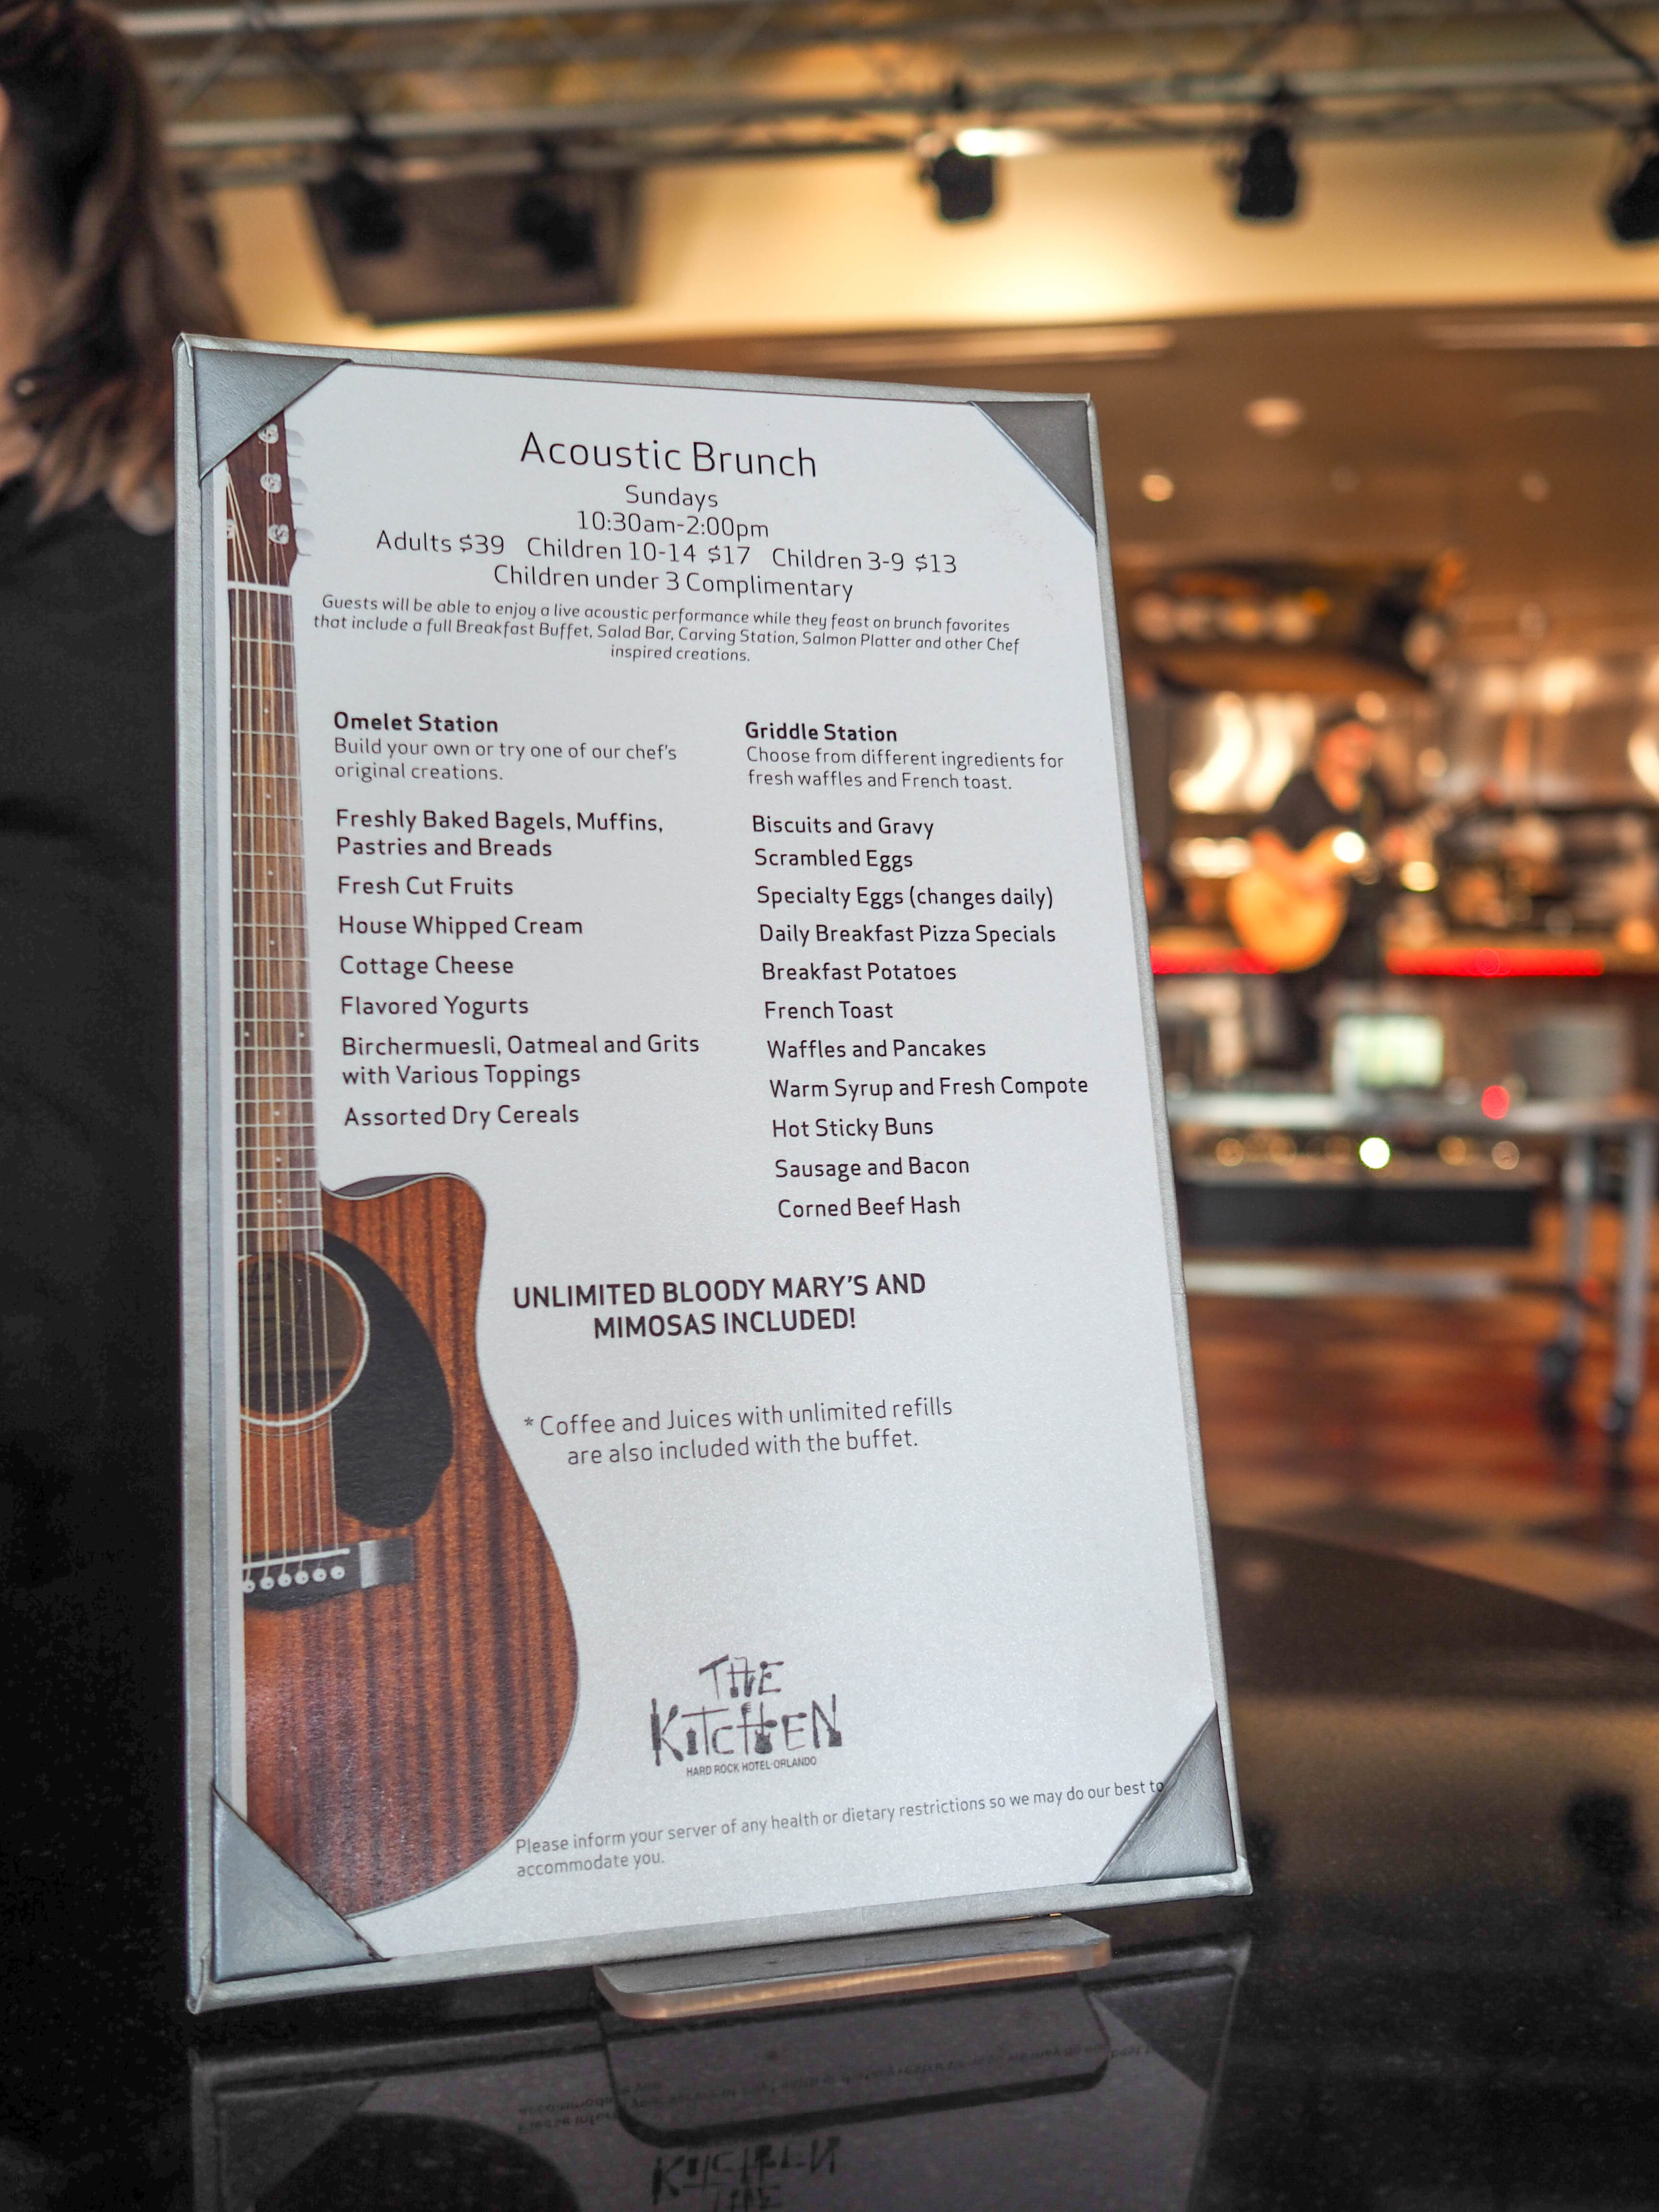 New Acoustic Brunch At Hard Rock Hotel Orlando The Orlando Girl